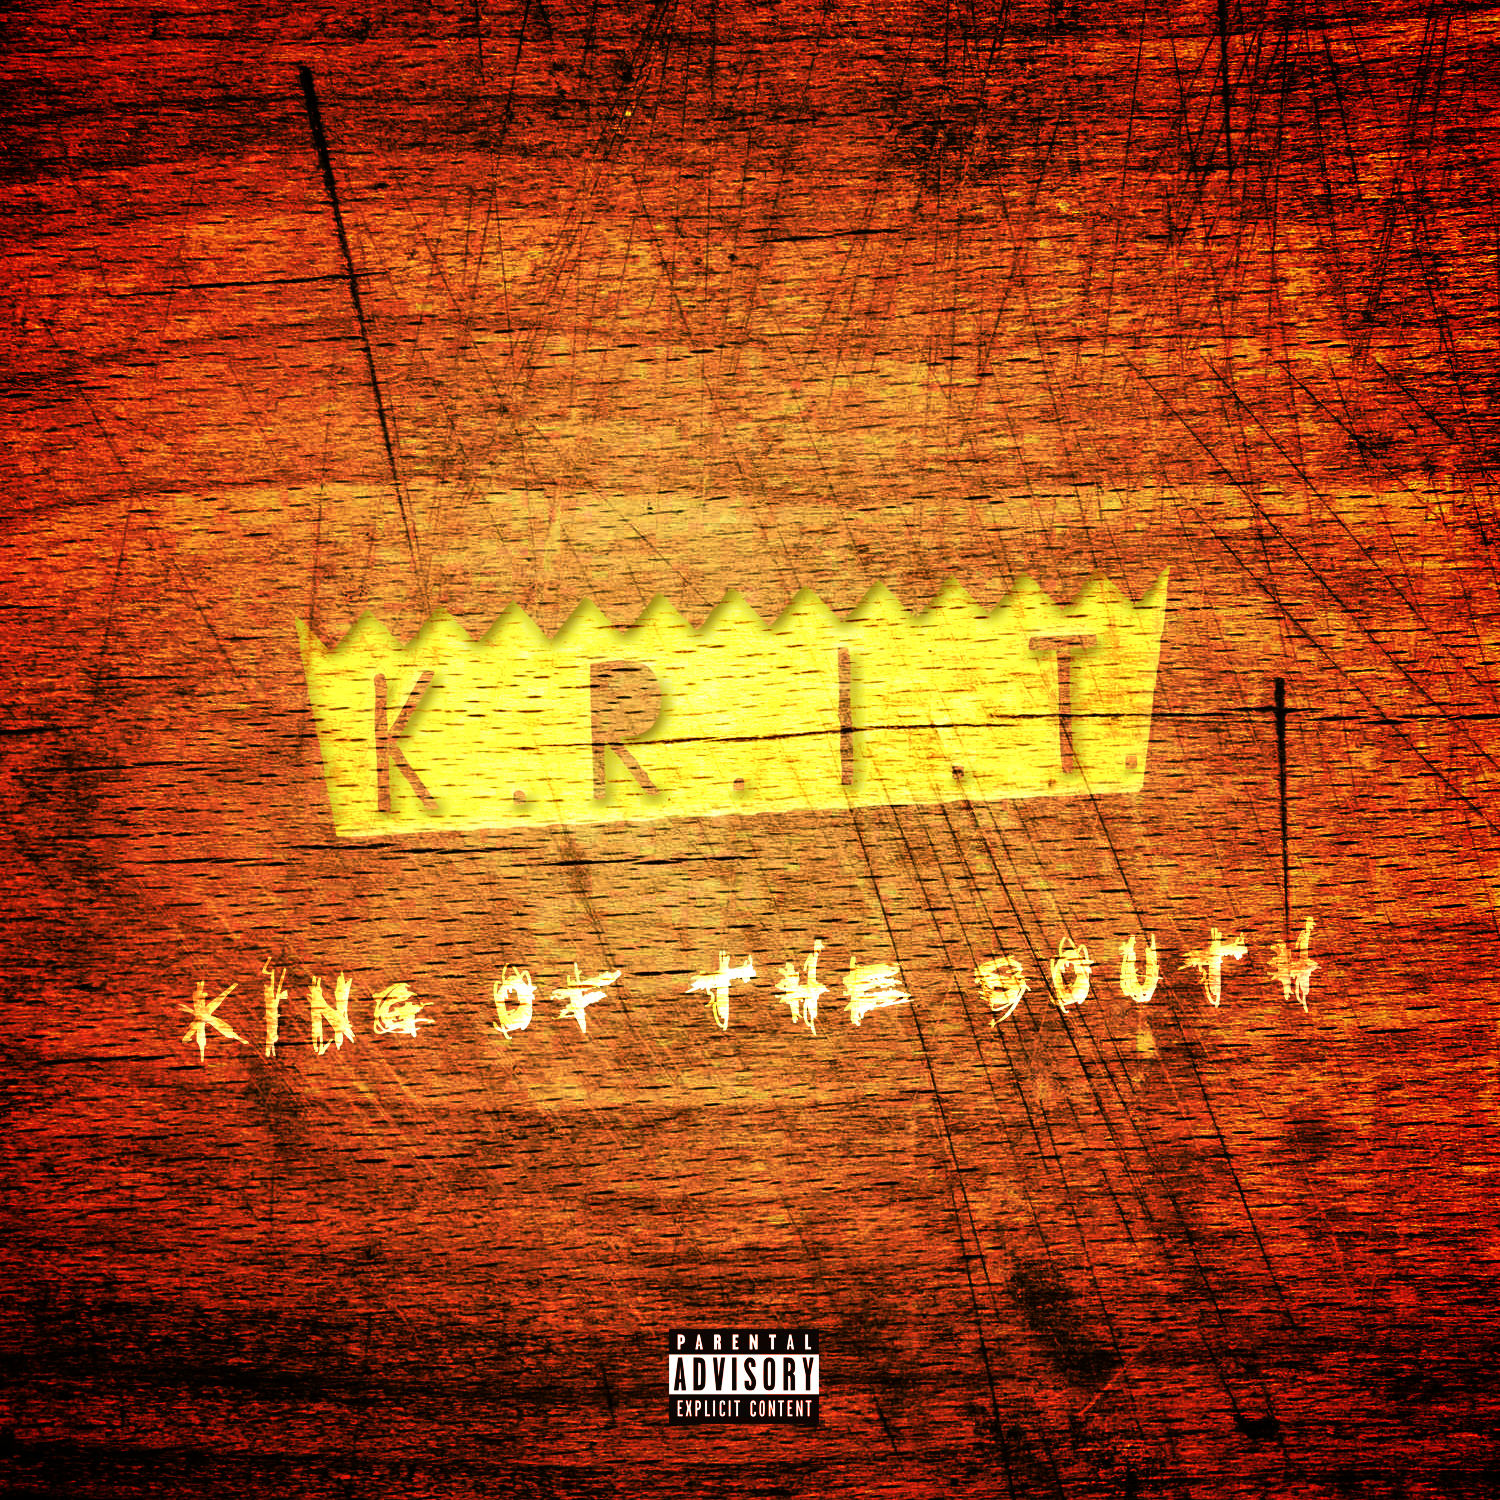 king of the south copy 2